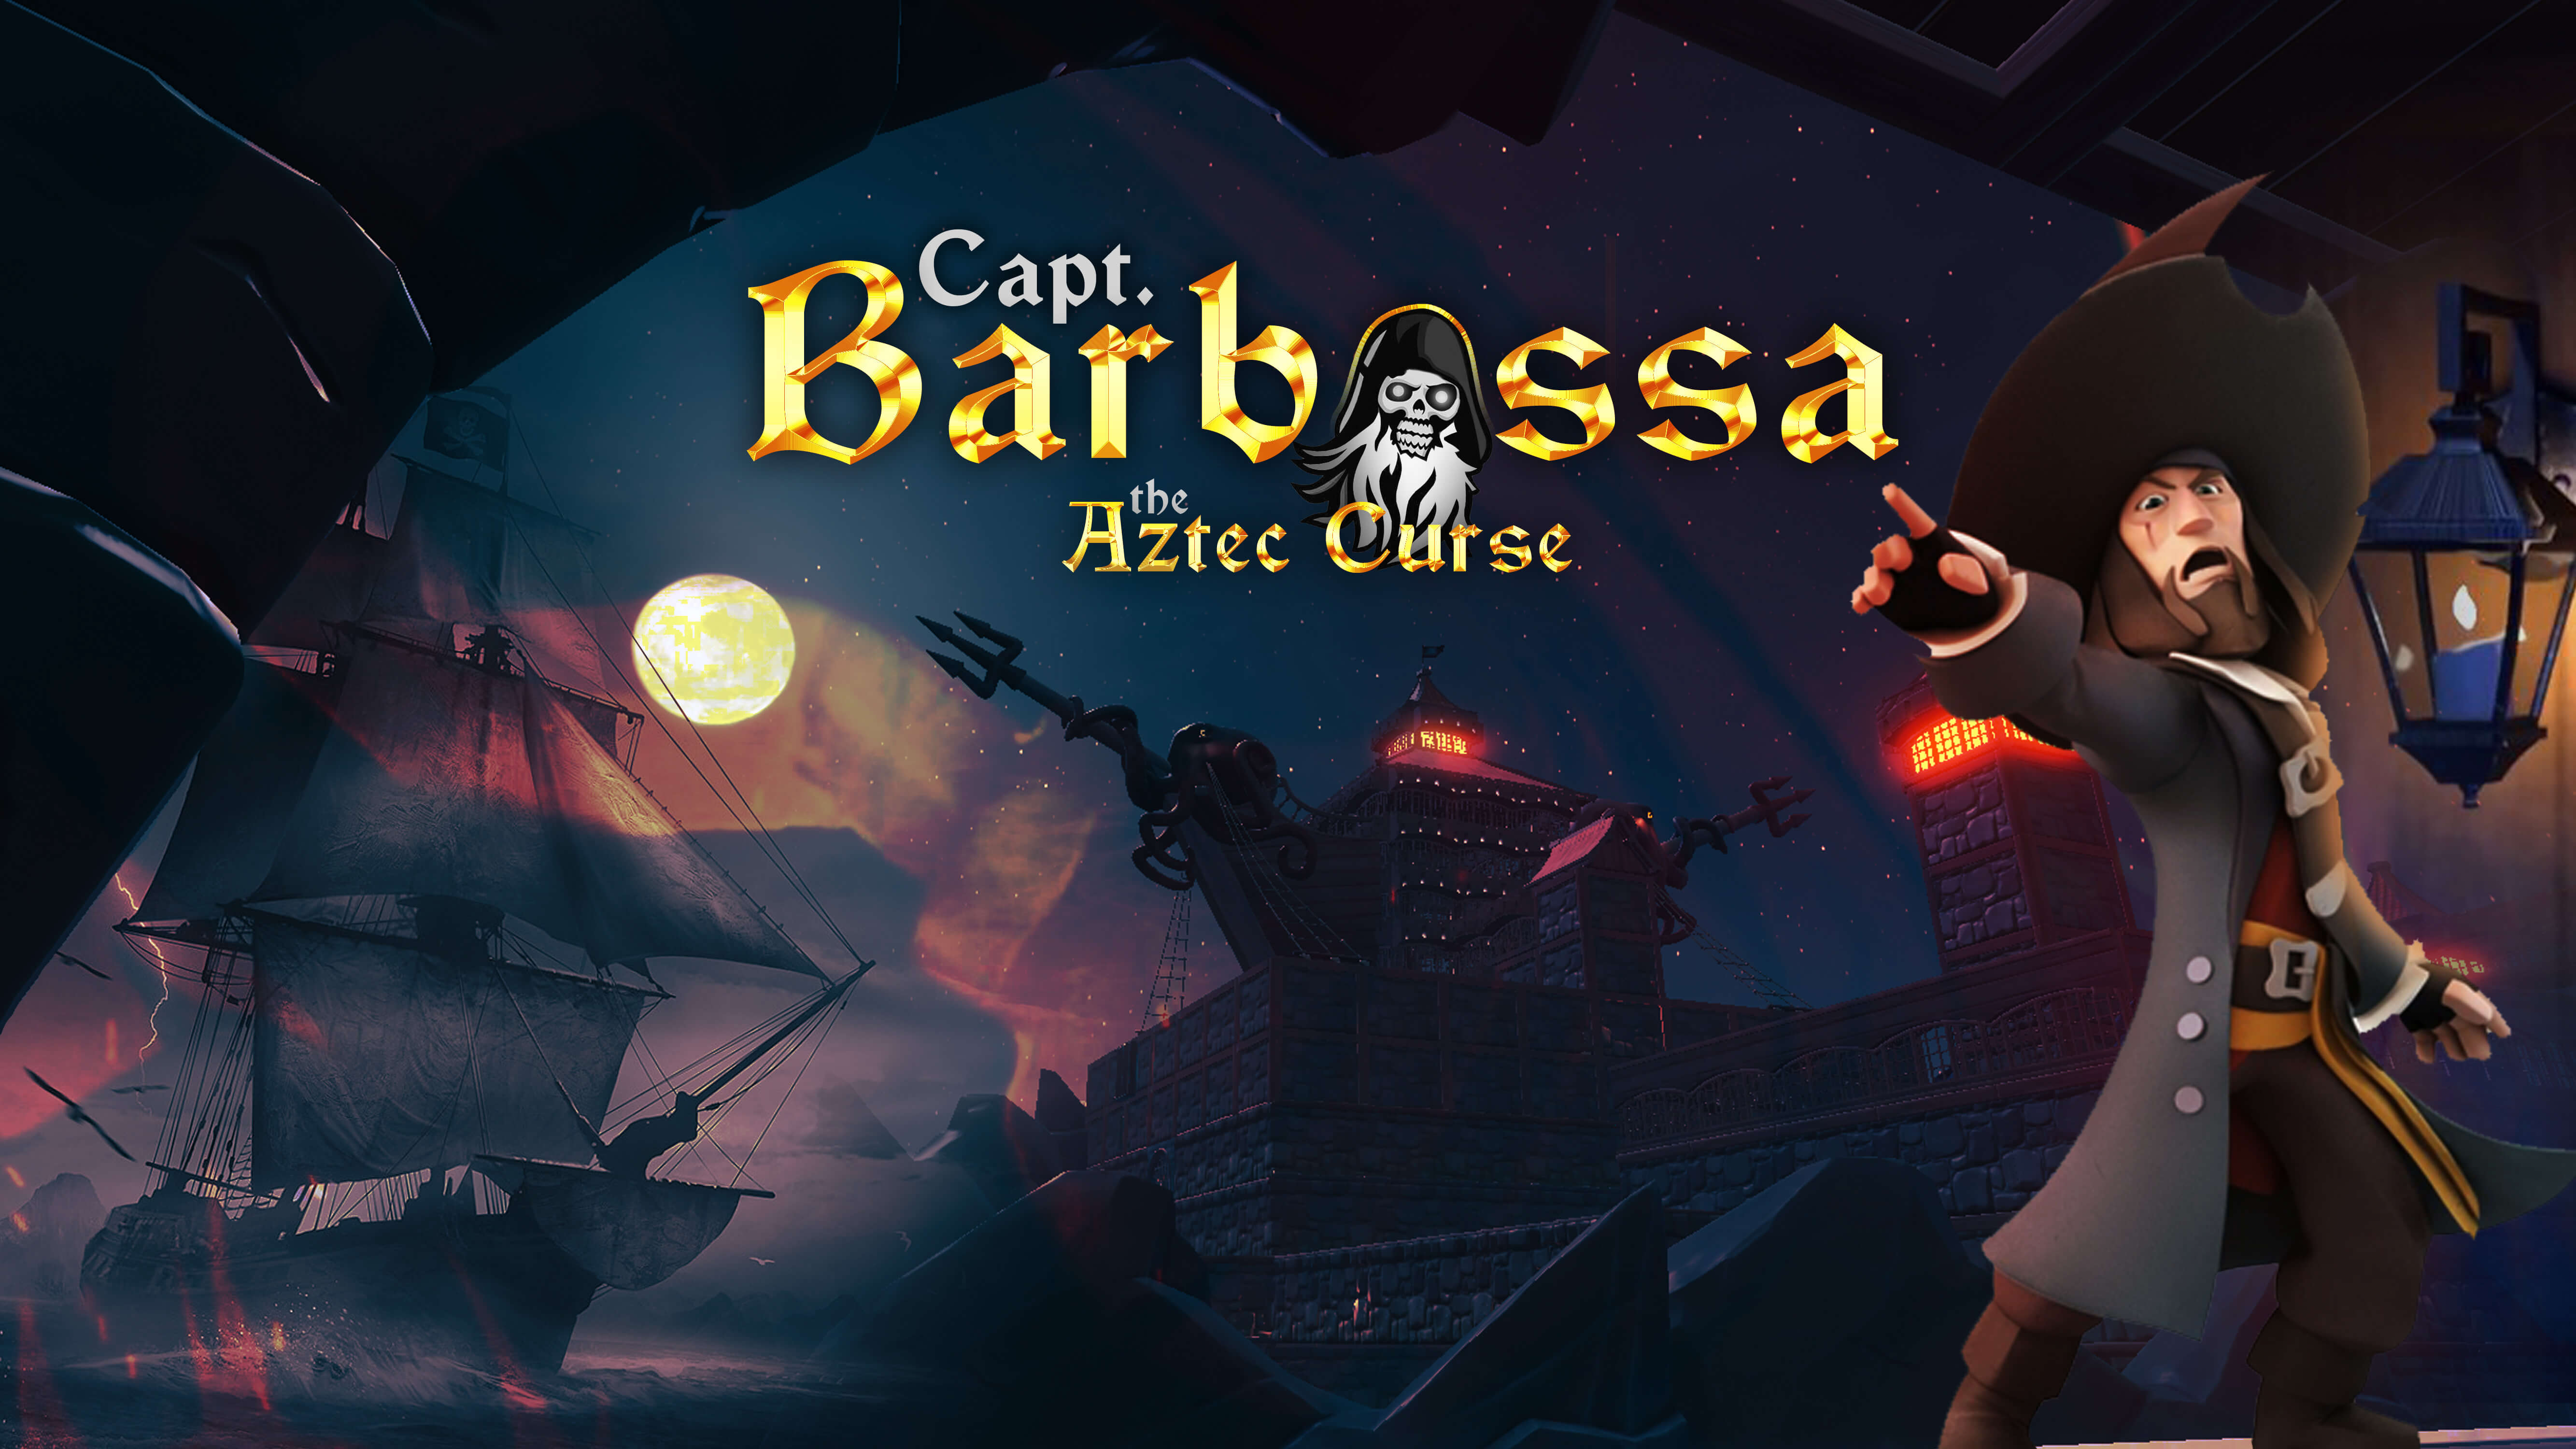 CAPT. BARBOSSA THE AZTEC CURSE